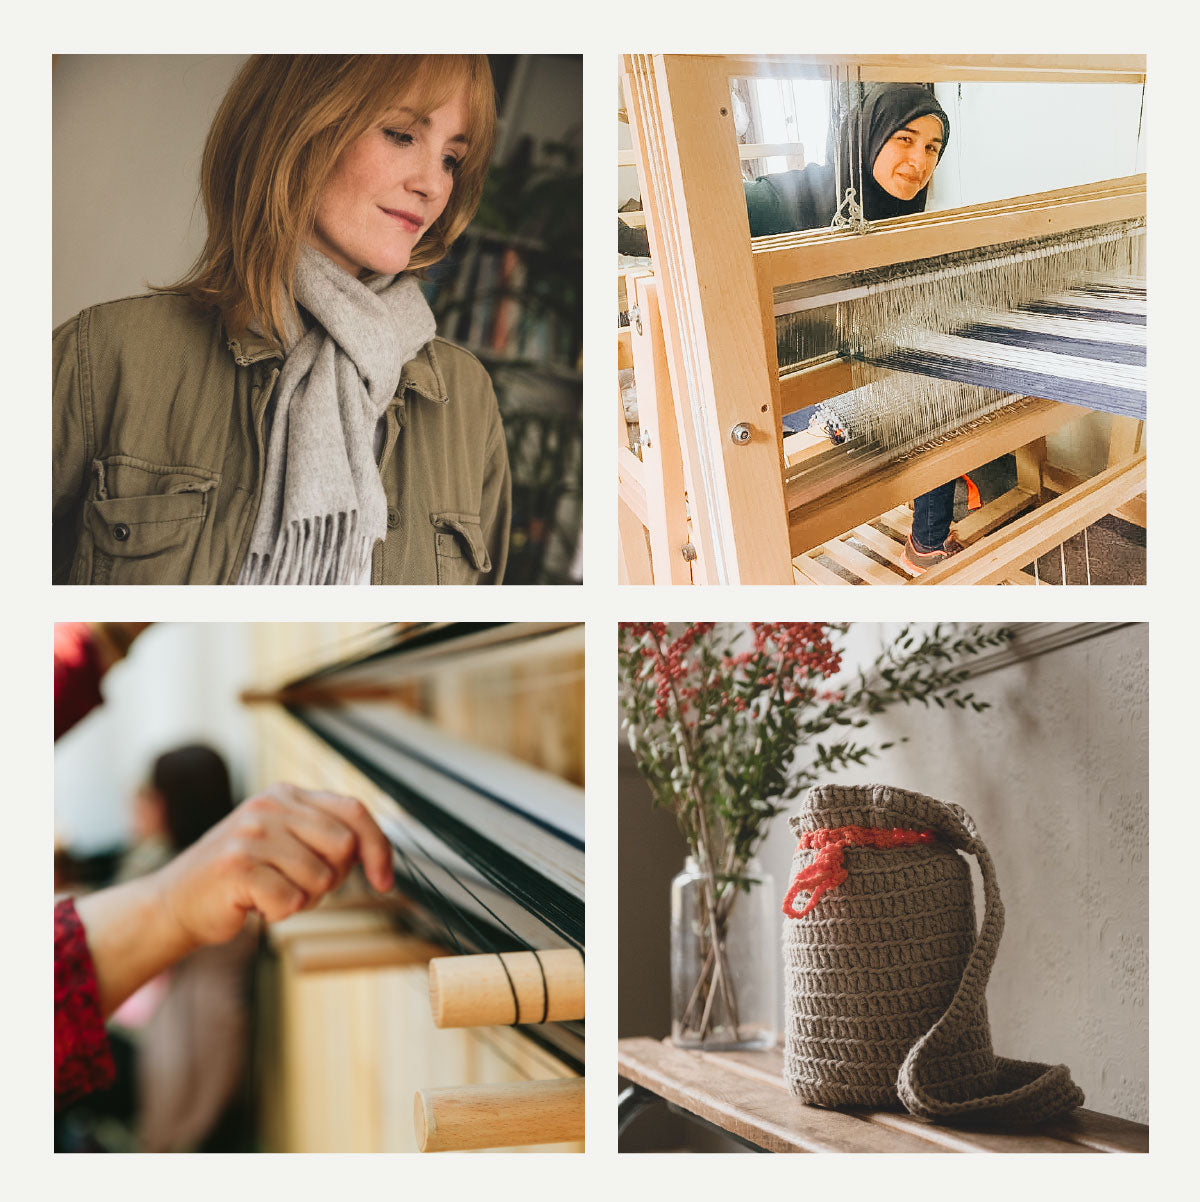 Grid of 4 images: 1 - A woman with ginger hair wears a Love Welcomes light grey cashmere scarf around her neck with an olive green jacket. 2- A Love Welcomes woman who is a refugee peers at the camera through a weaving loom, wearing a headscarf. 3 - A close up of a Love Welcomes woman's hand preparing the materials for weaving. 4 - A Love Welcomes hand crocheted bag in brown with orange tie.